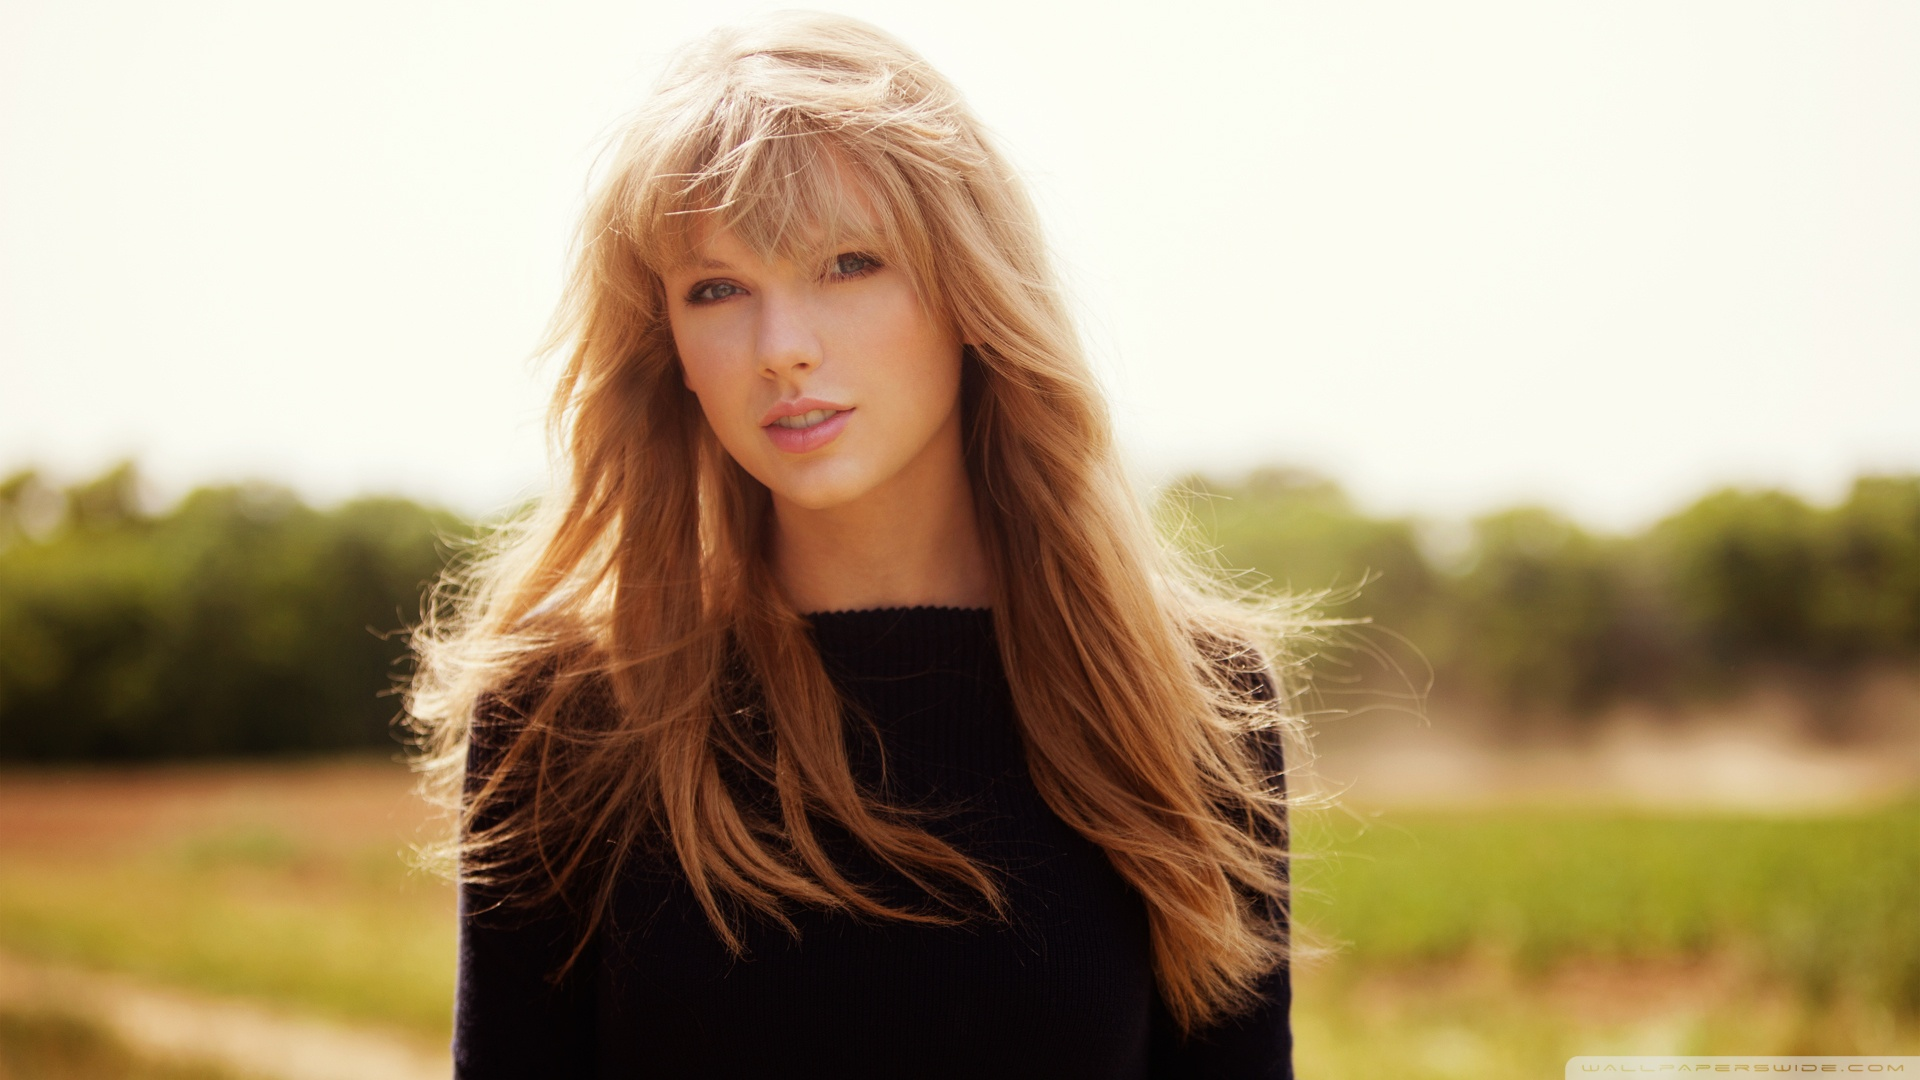 Taylor Swift 2013 wallpaper High Quality WallpapersWallpaper 1920x1080